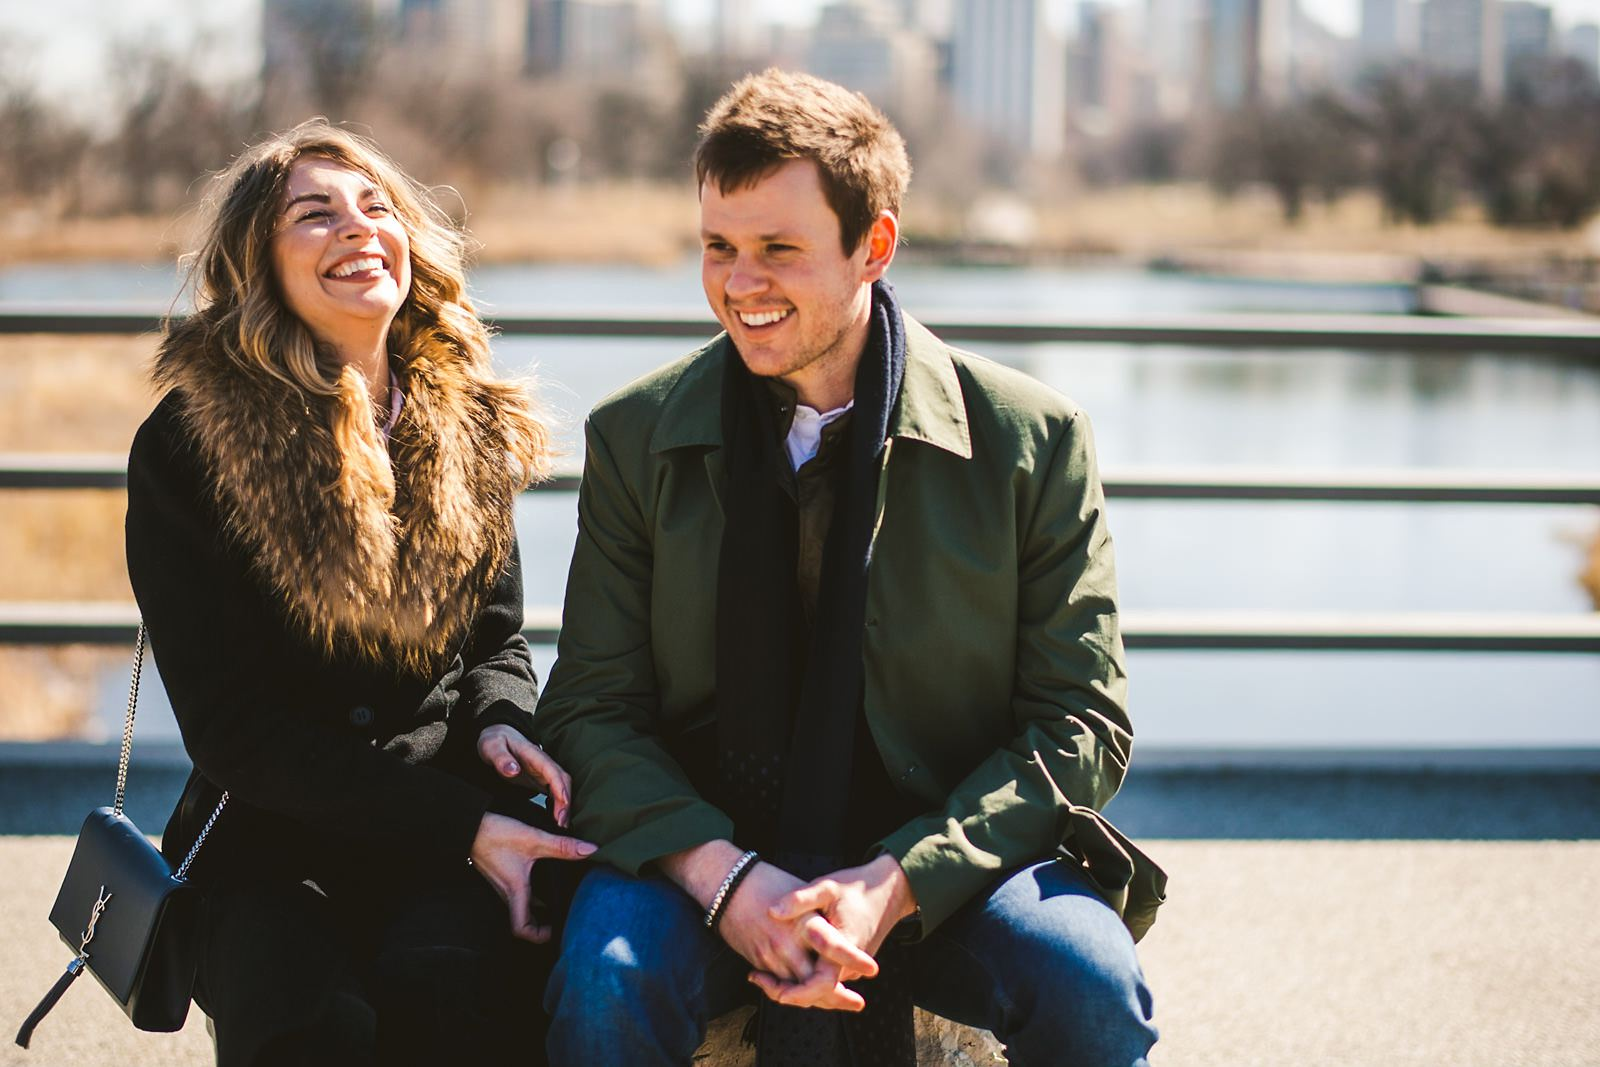 08 chicago engagement photographer - Chicago Marriage Proposal Photos // Justin + Basia